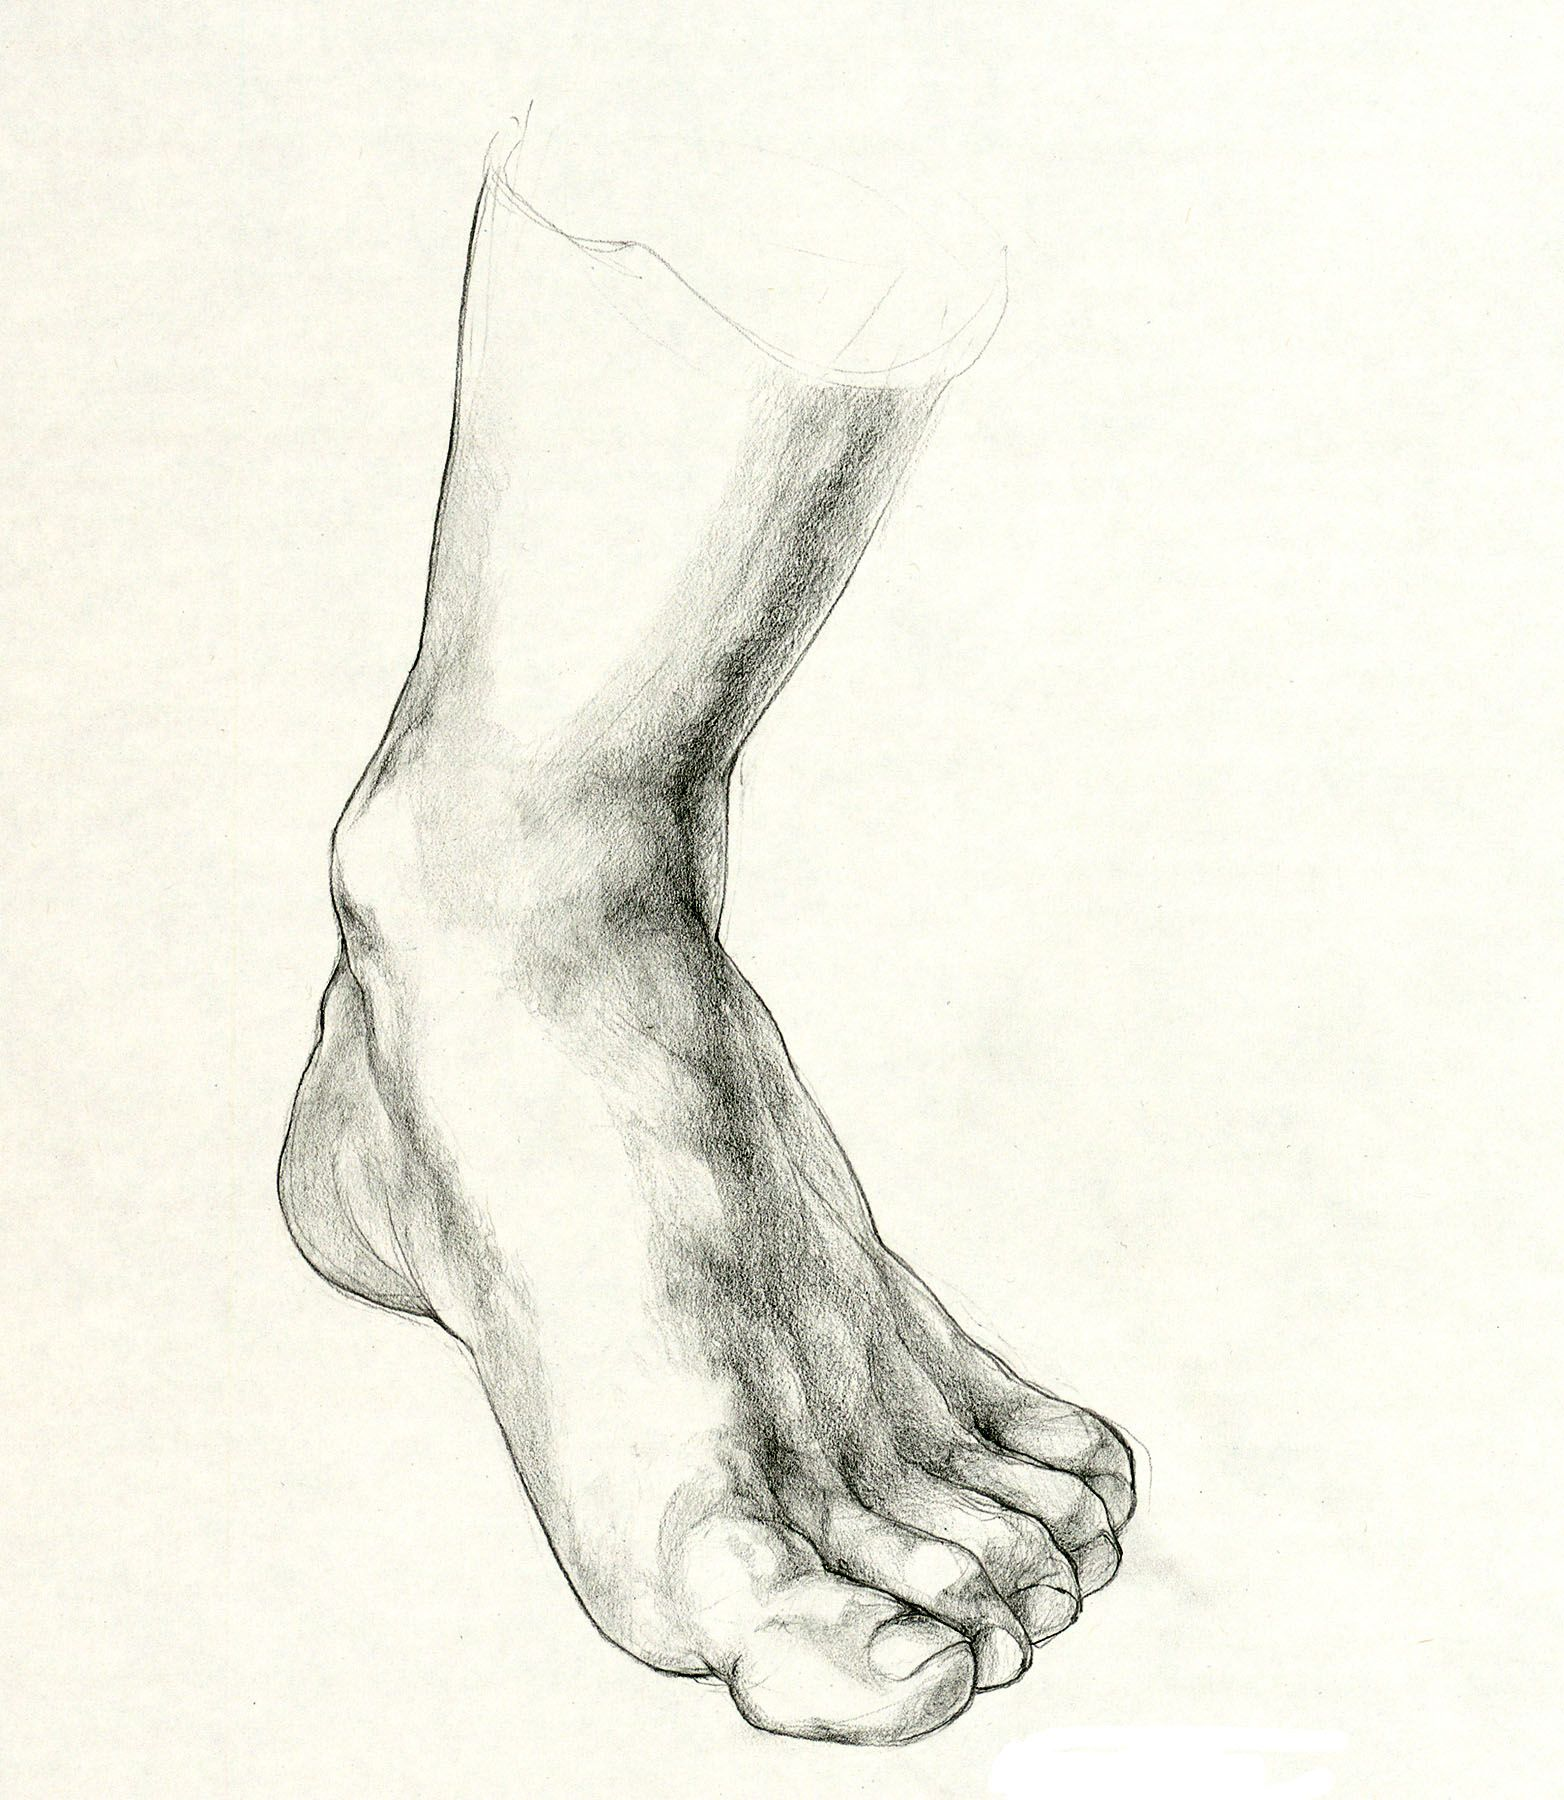 https://soulonfireart.files.wordpress.com/2012/10/foot-study.jpg ...